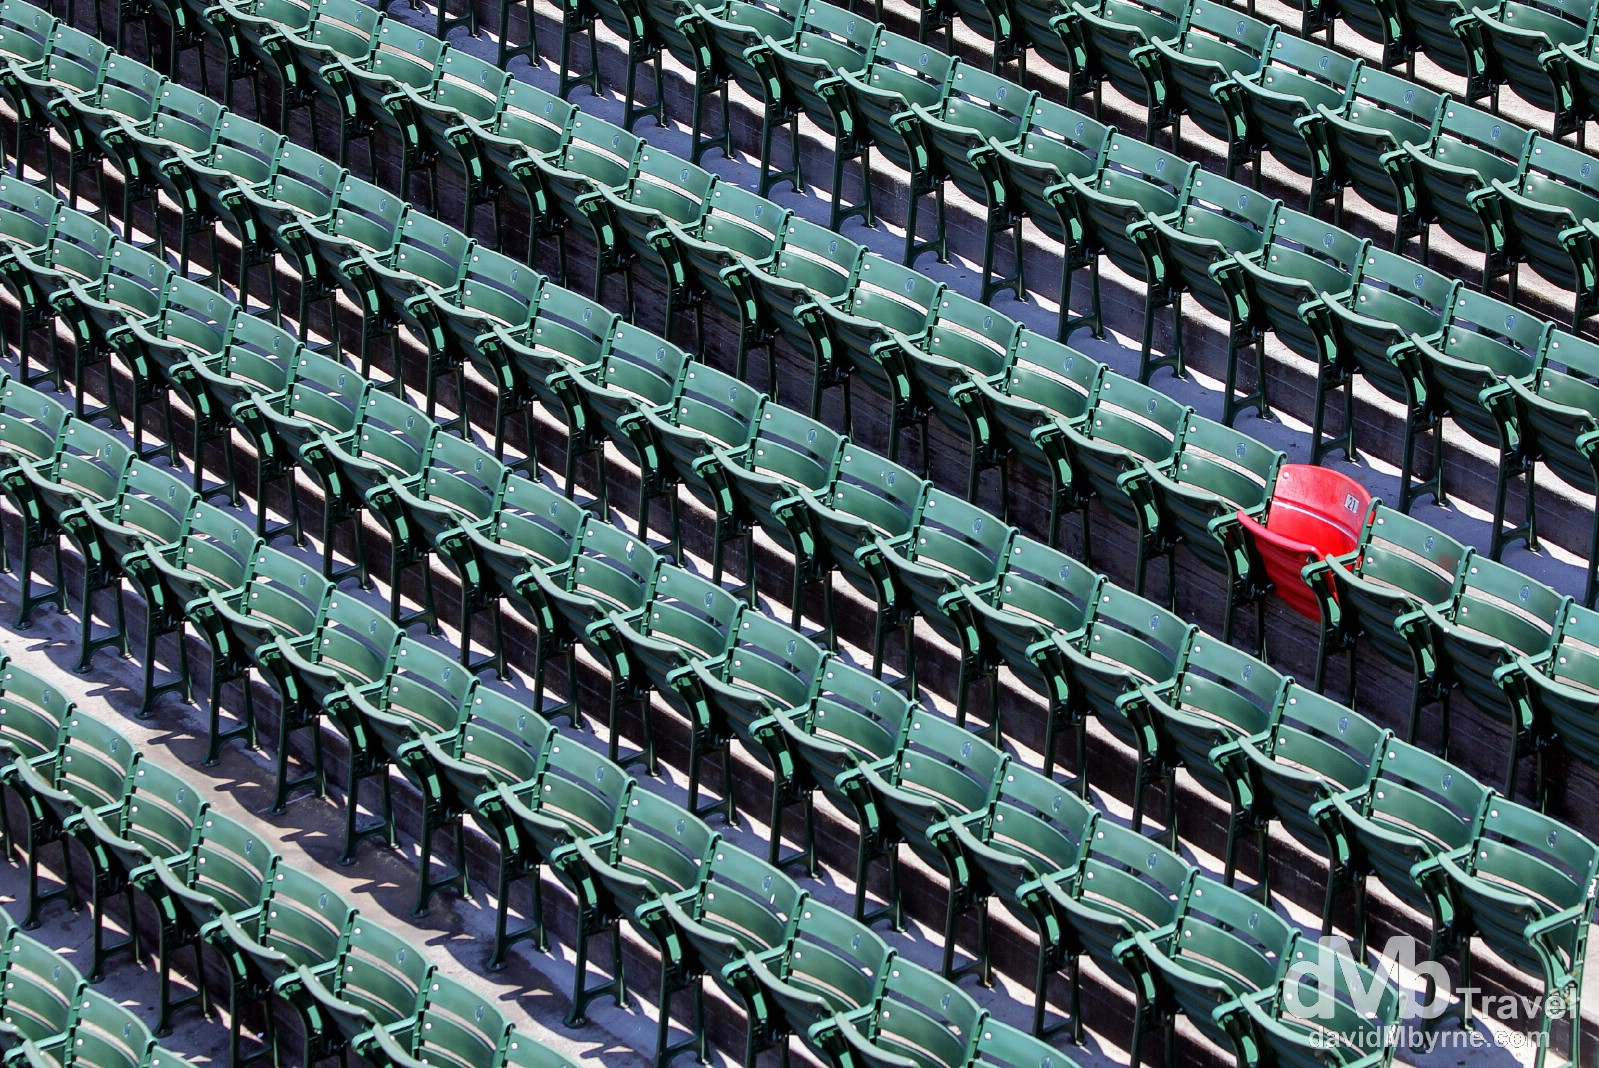 The Ted Williams red seat stands out amongst a see of green in the right field bleacher section of Fenway Park. Many baseball greats have played for the Red Sox, among them Babe Ruth, Carl Yastrzemski, & Ted Williams. On June 9, 1946, Williams hit a 502-foot homerun, the longest ever hit into the Fenway bleachers. The seat, located in section 42, row 37, seat 21, was painted red, one of only 2 in Fenway, to commemorate Williams' titanic blast, although at the time of the home run the bleachers were real bleachers and not individual seats. Fenway Park, Fenway, Boston, Massachusetts, USA. July 17th 2013.